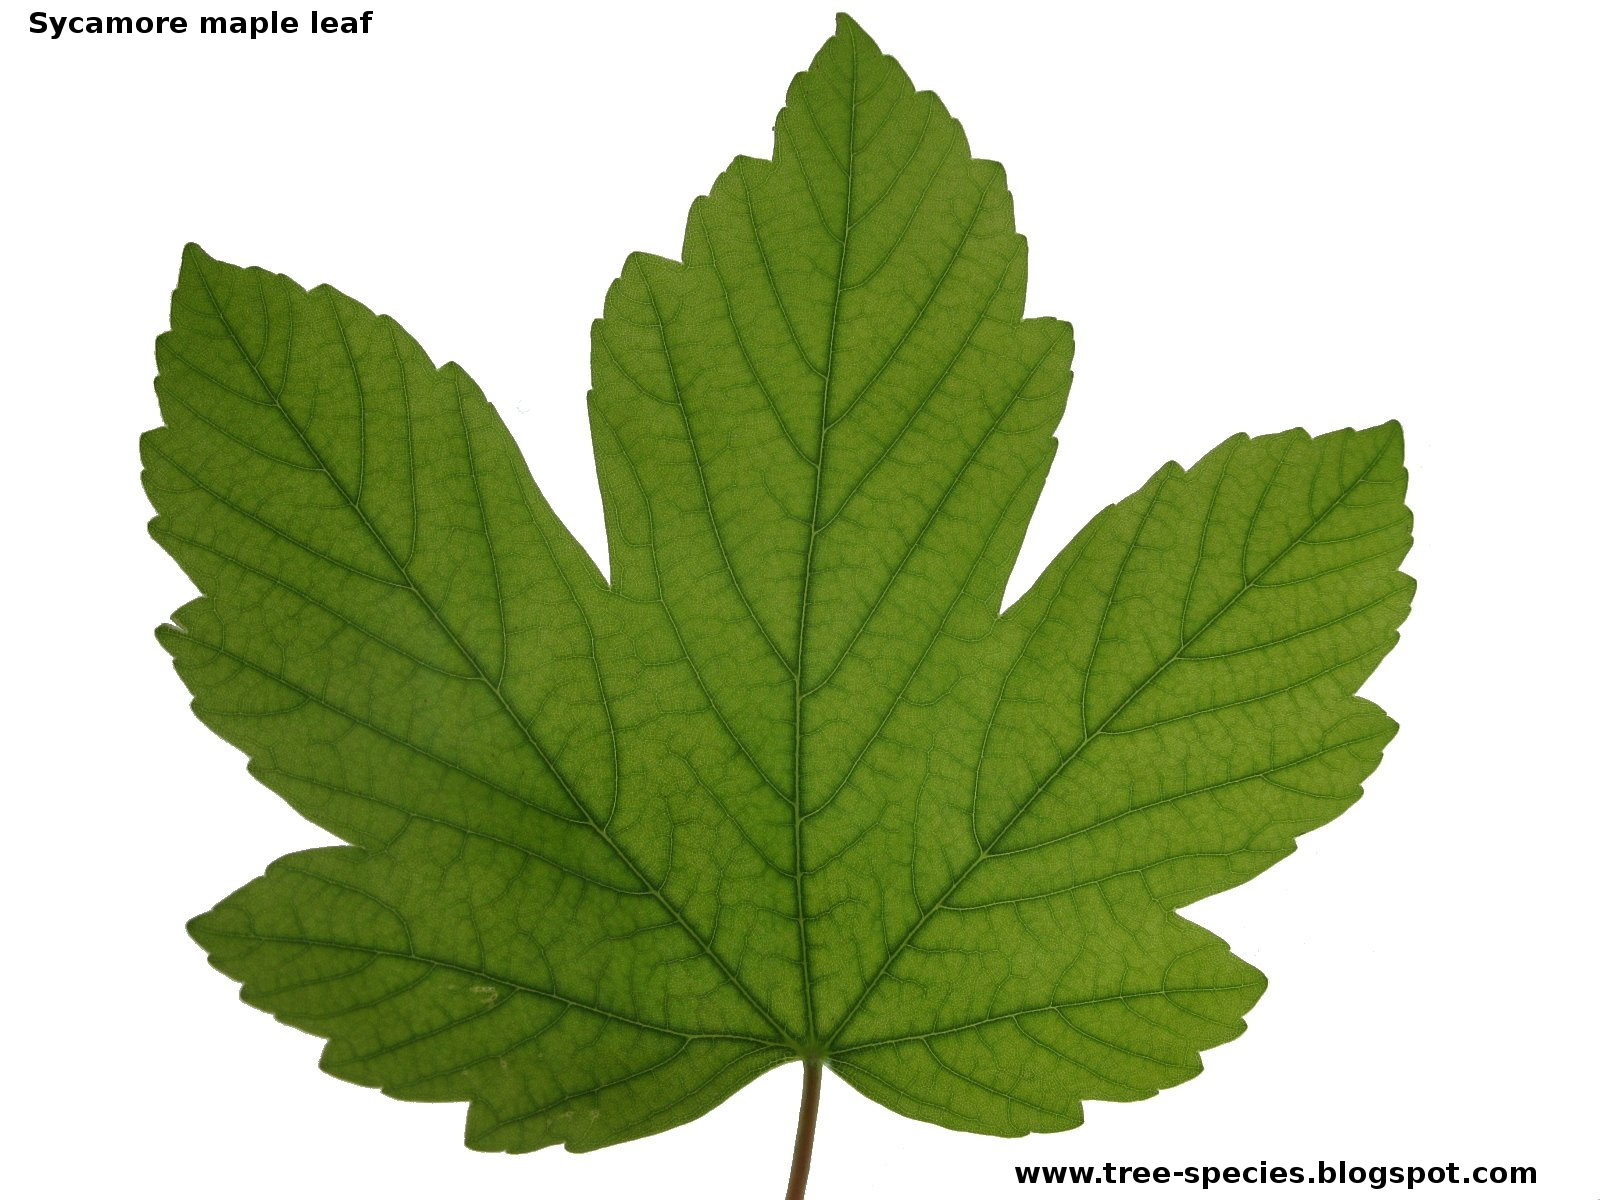 Maple Leaf vs Sycamore Leaf Sycamore Maple Leaf